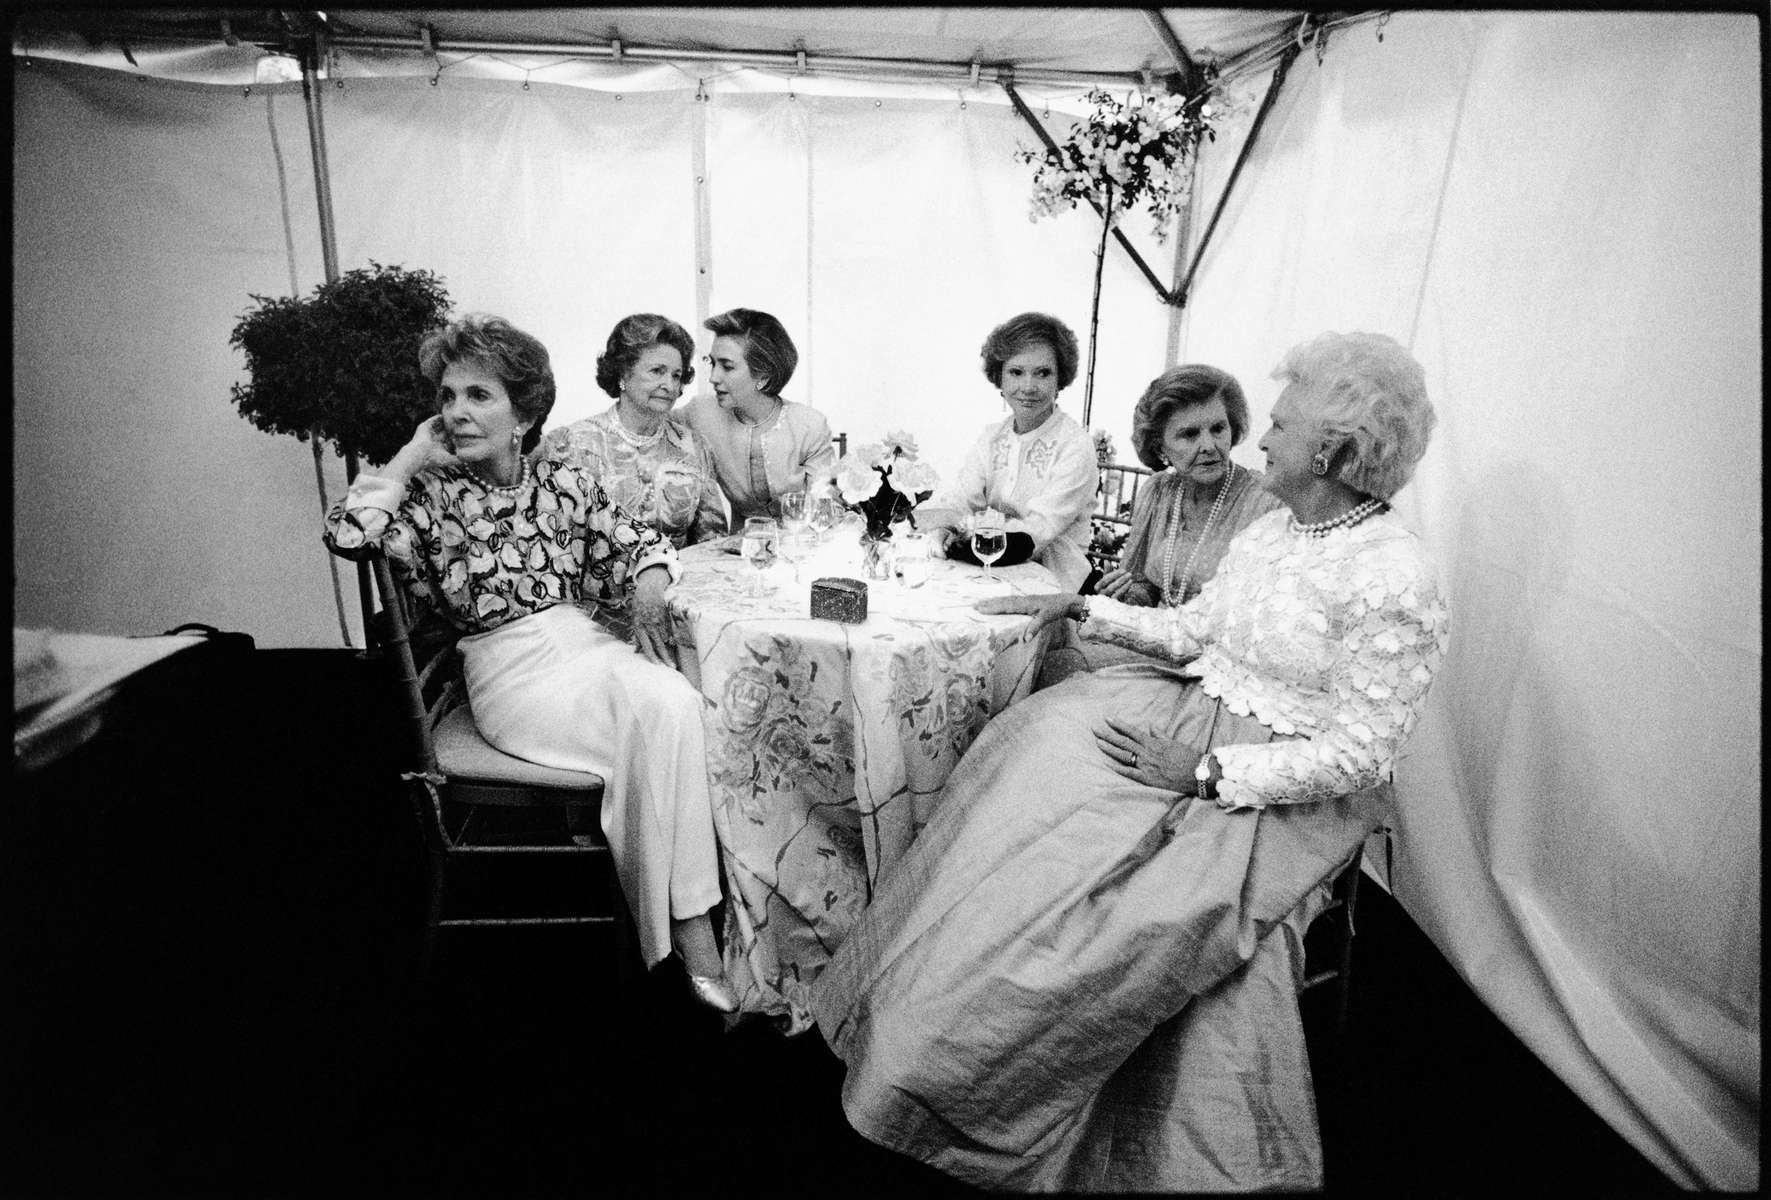 First Ladies, photographed on May 11, 1994. Please credit photo by Barbara Kinney, The White House.